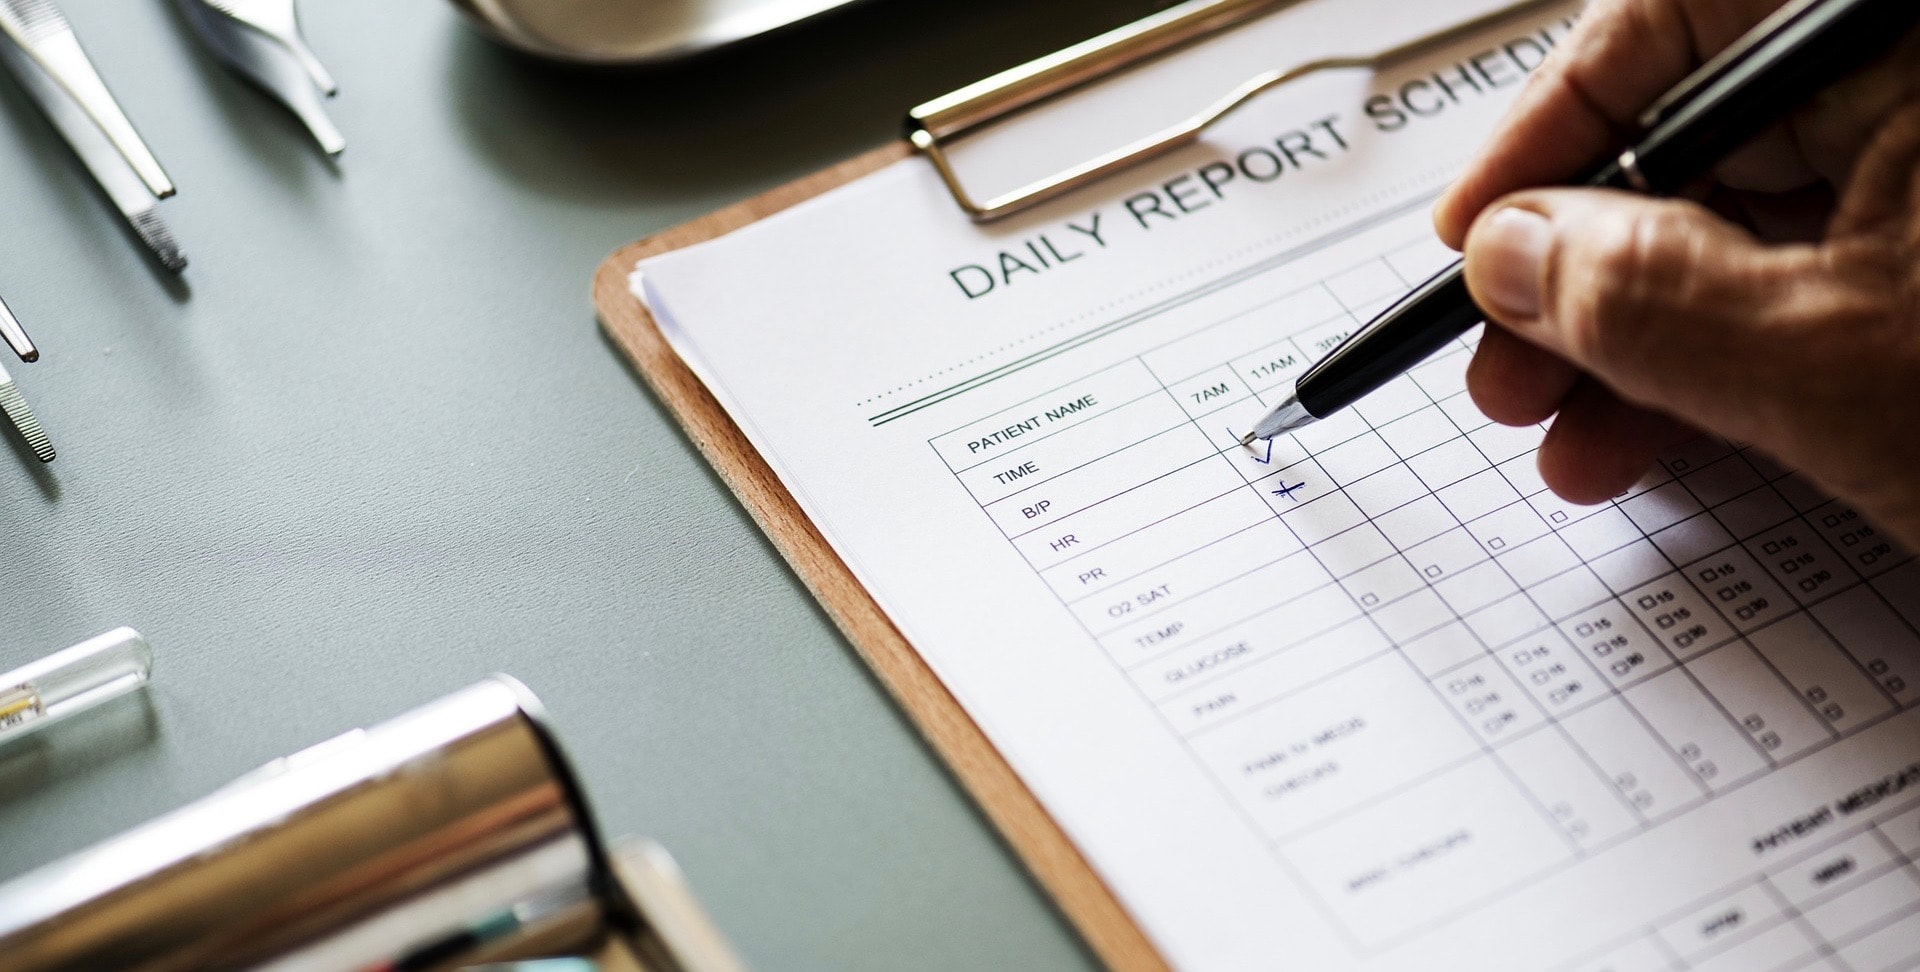 How to Deploy ASC Quality Reporting that Won't Tax Your Time Budget